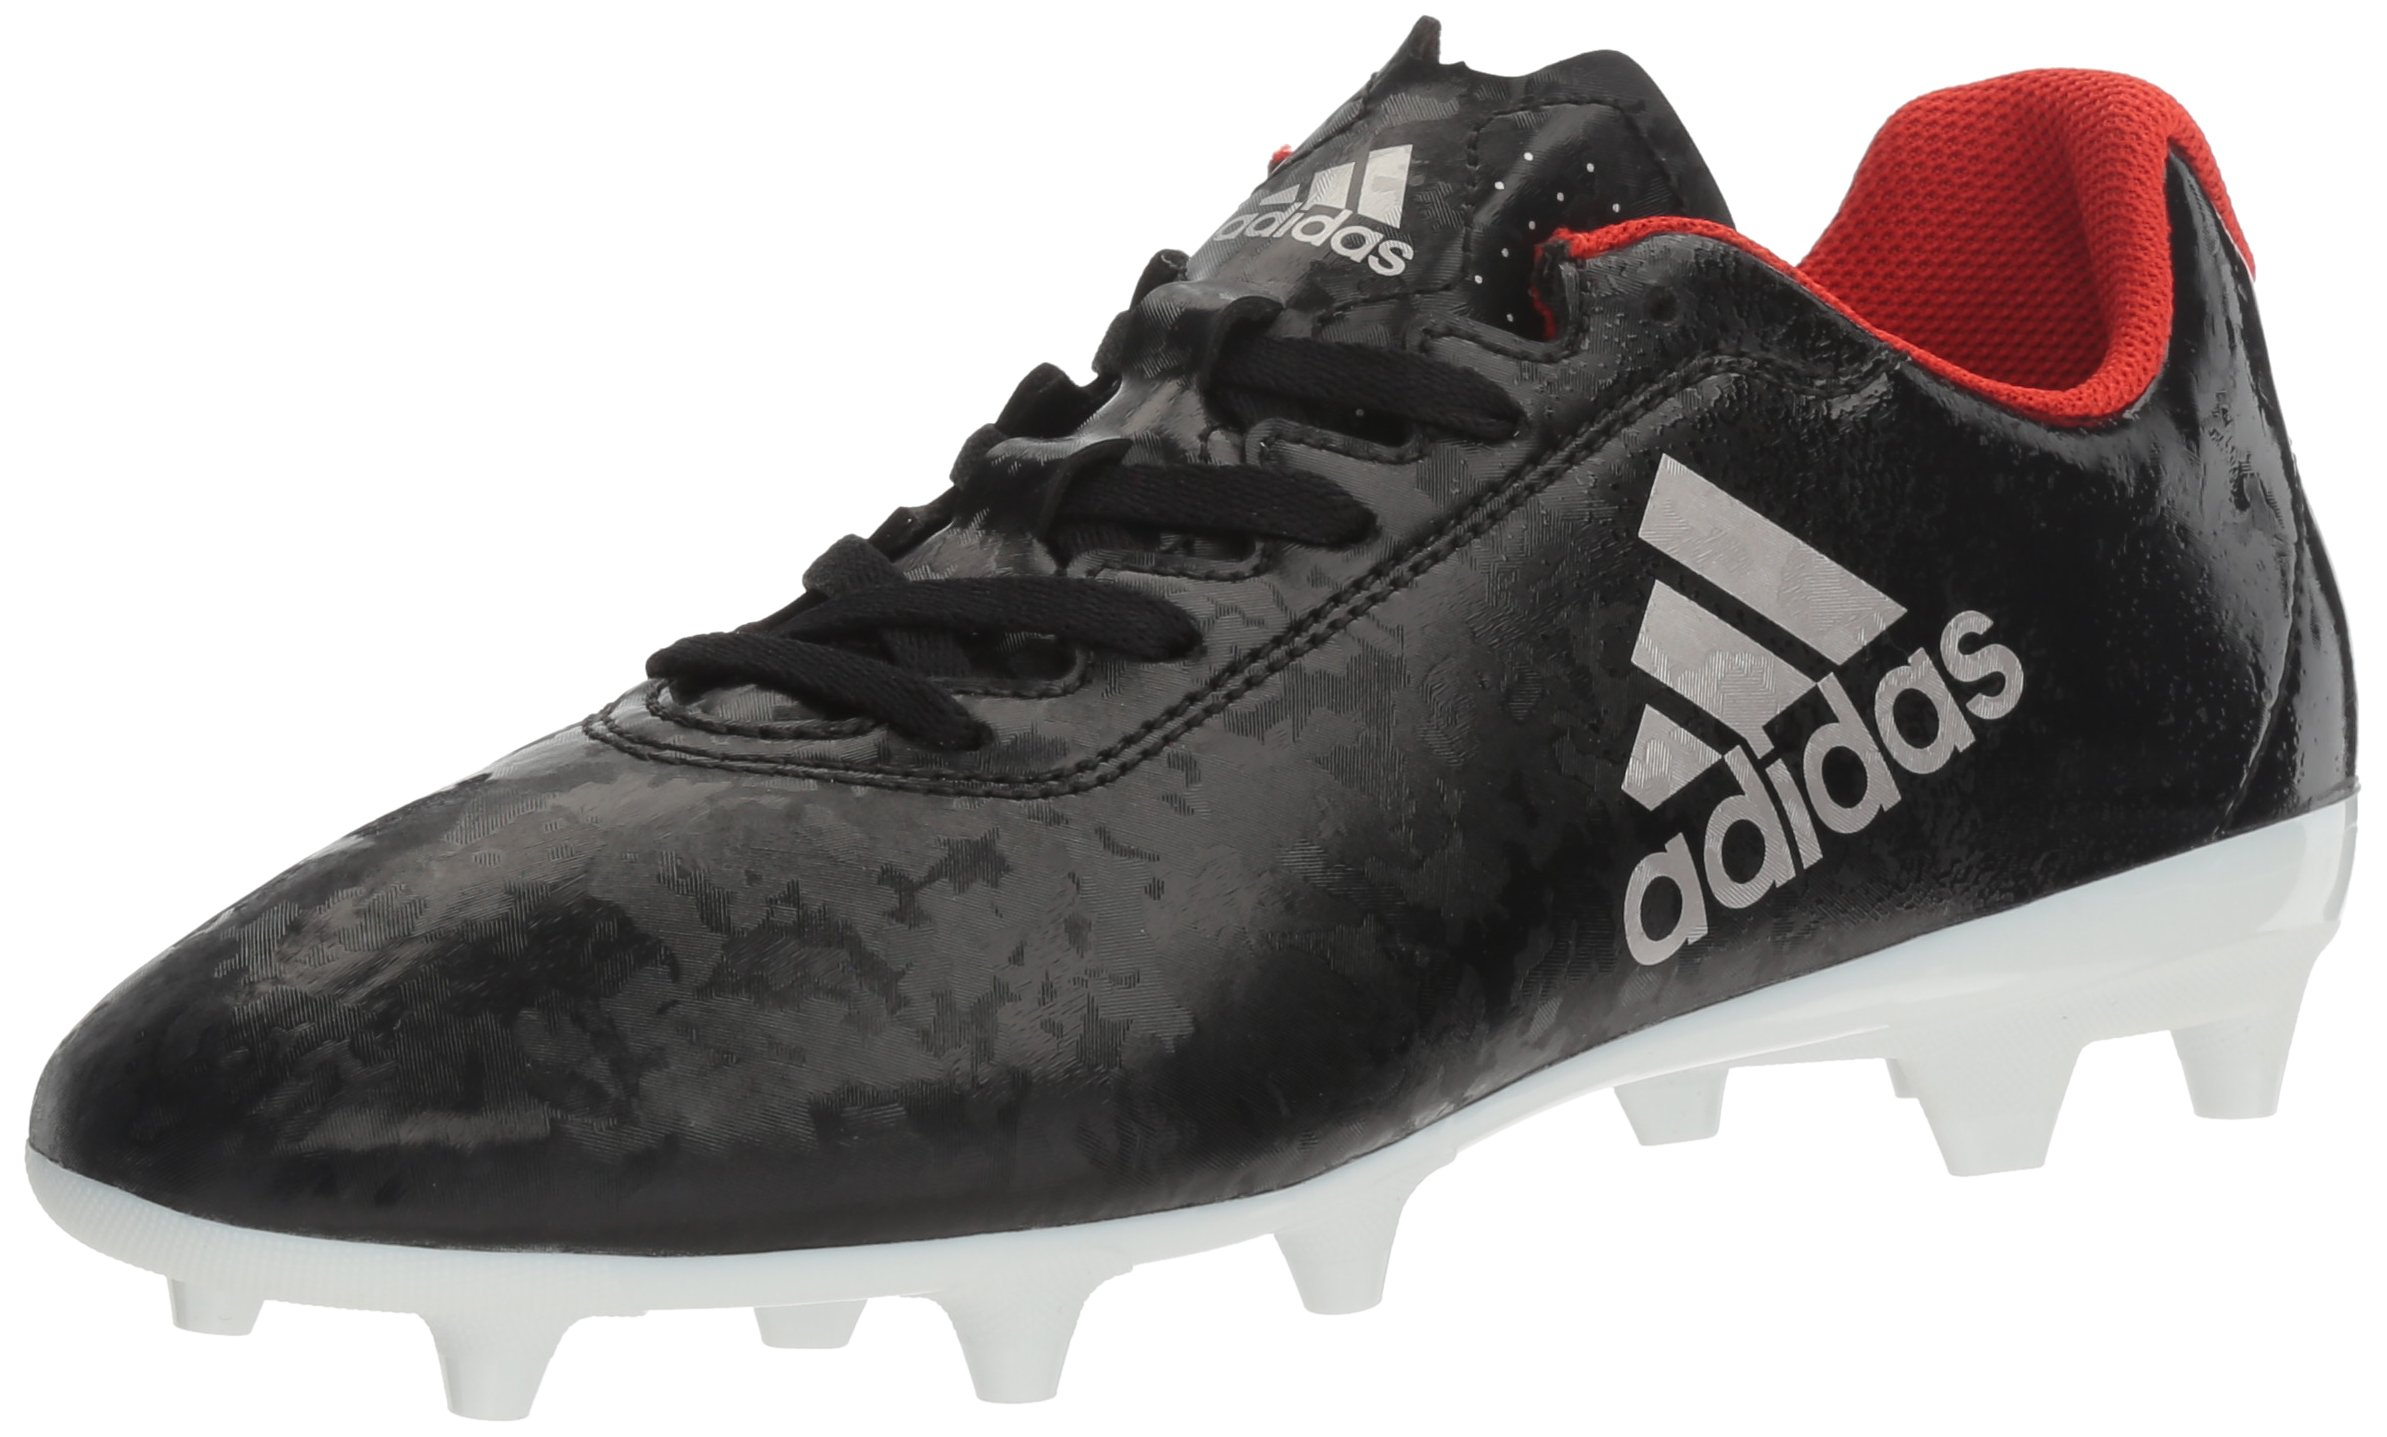 adidas Women's X 17.4 FG W Soccer Shoe, Black/Platino Core Red S, 6 M US